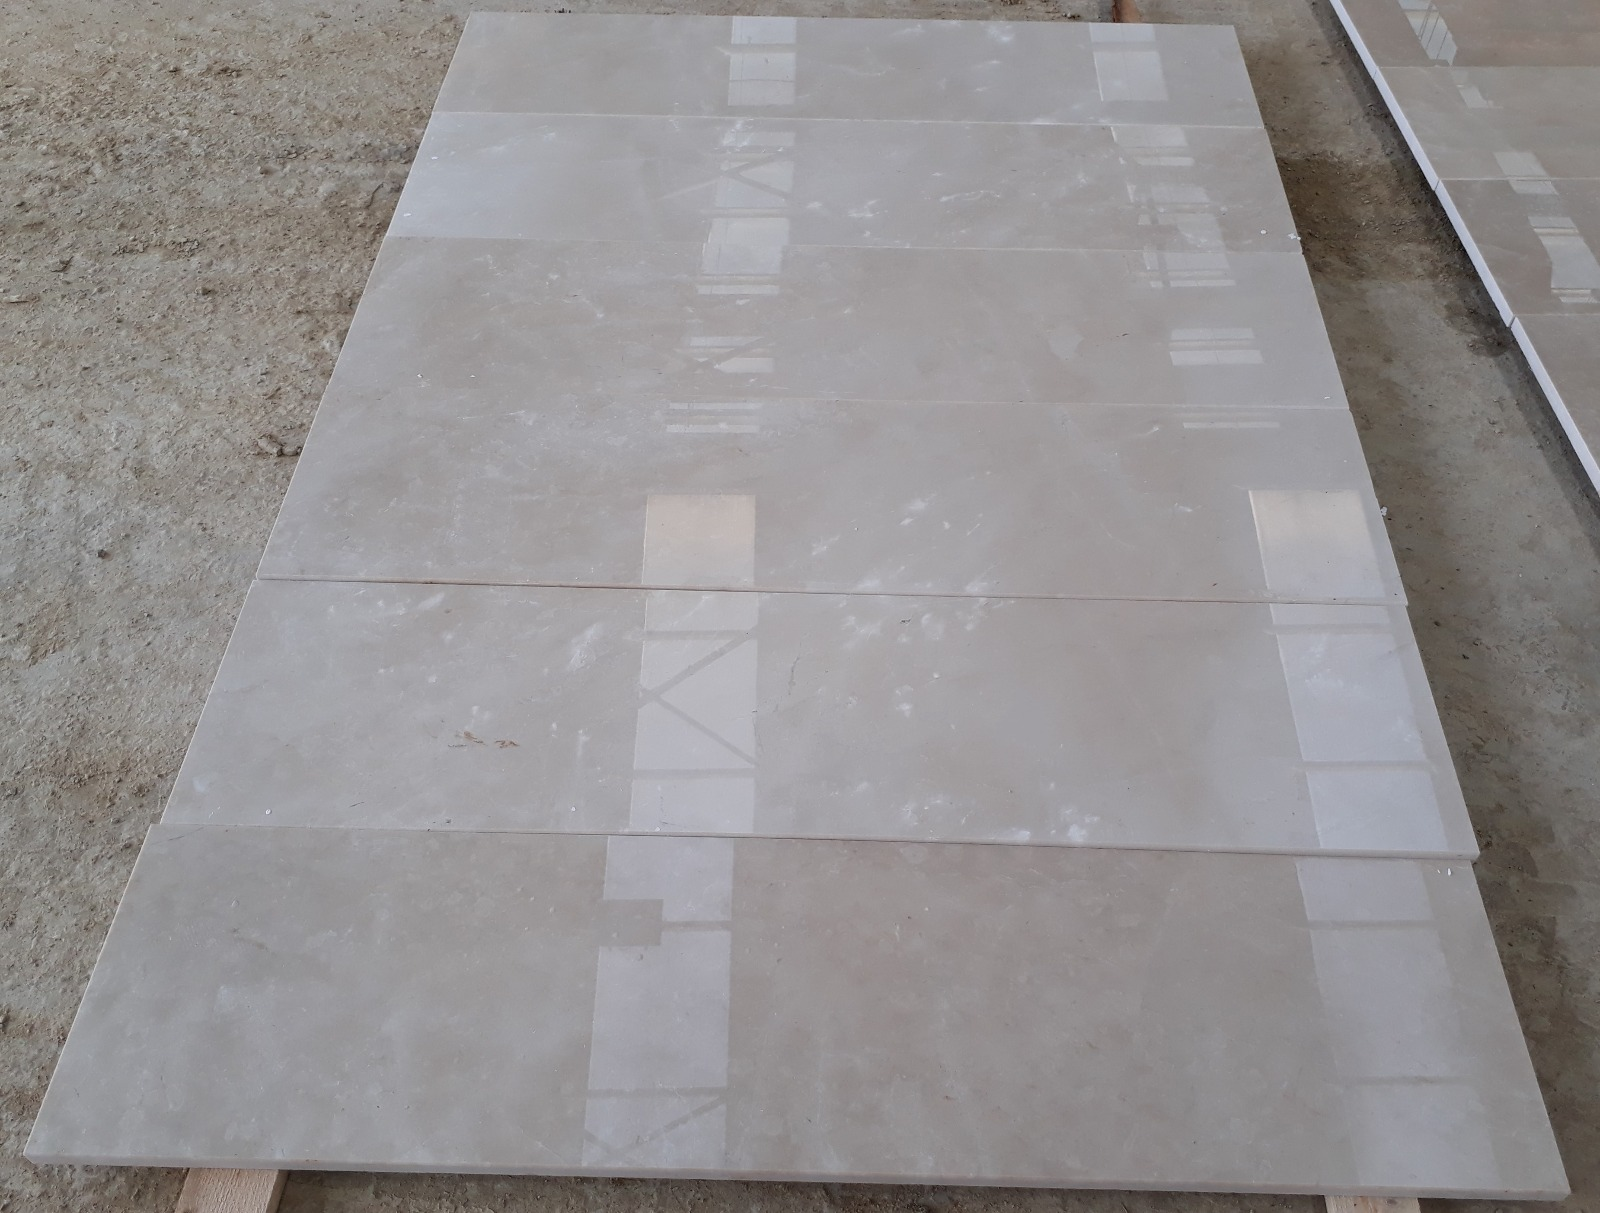 Elmali Beige_First Selection_300x1200x20 mm_Polished_Rejected__6_